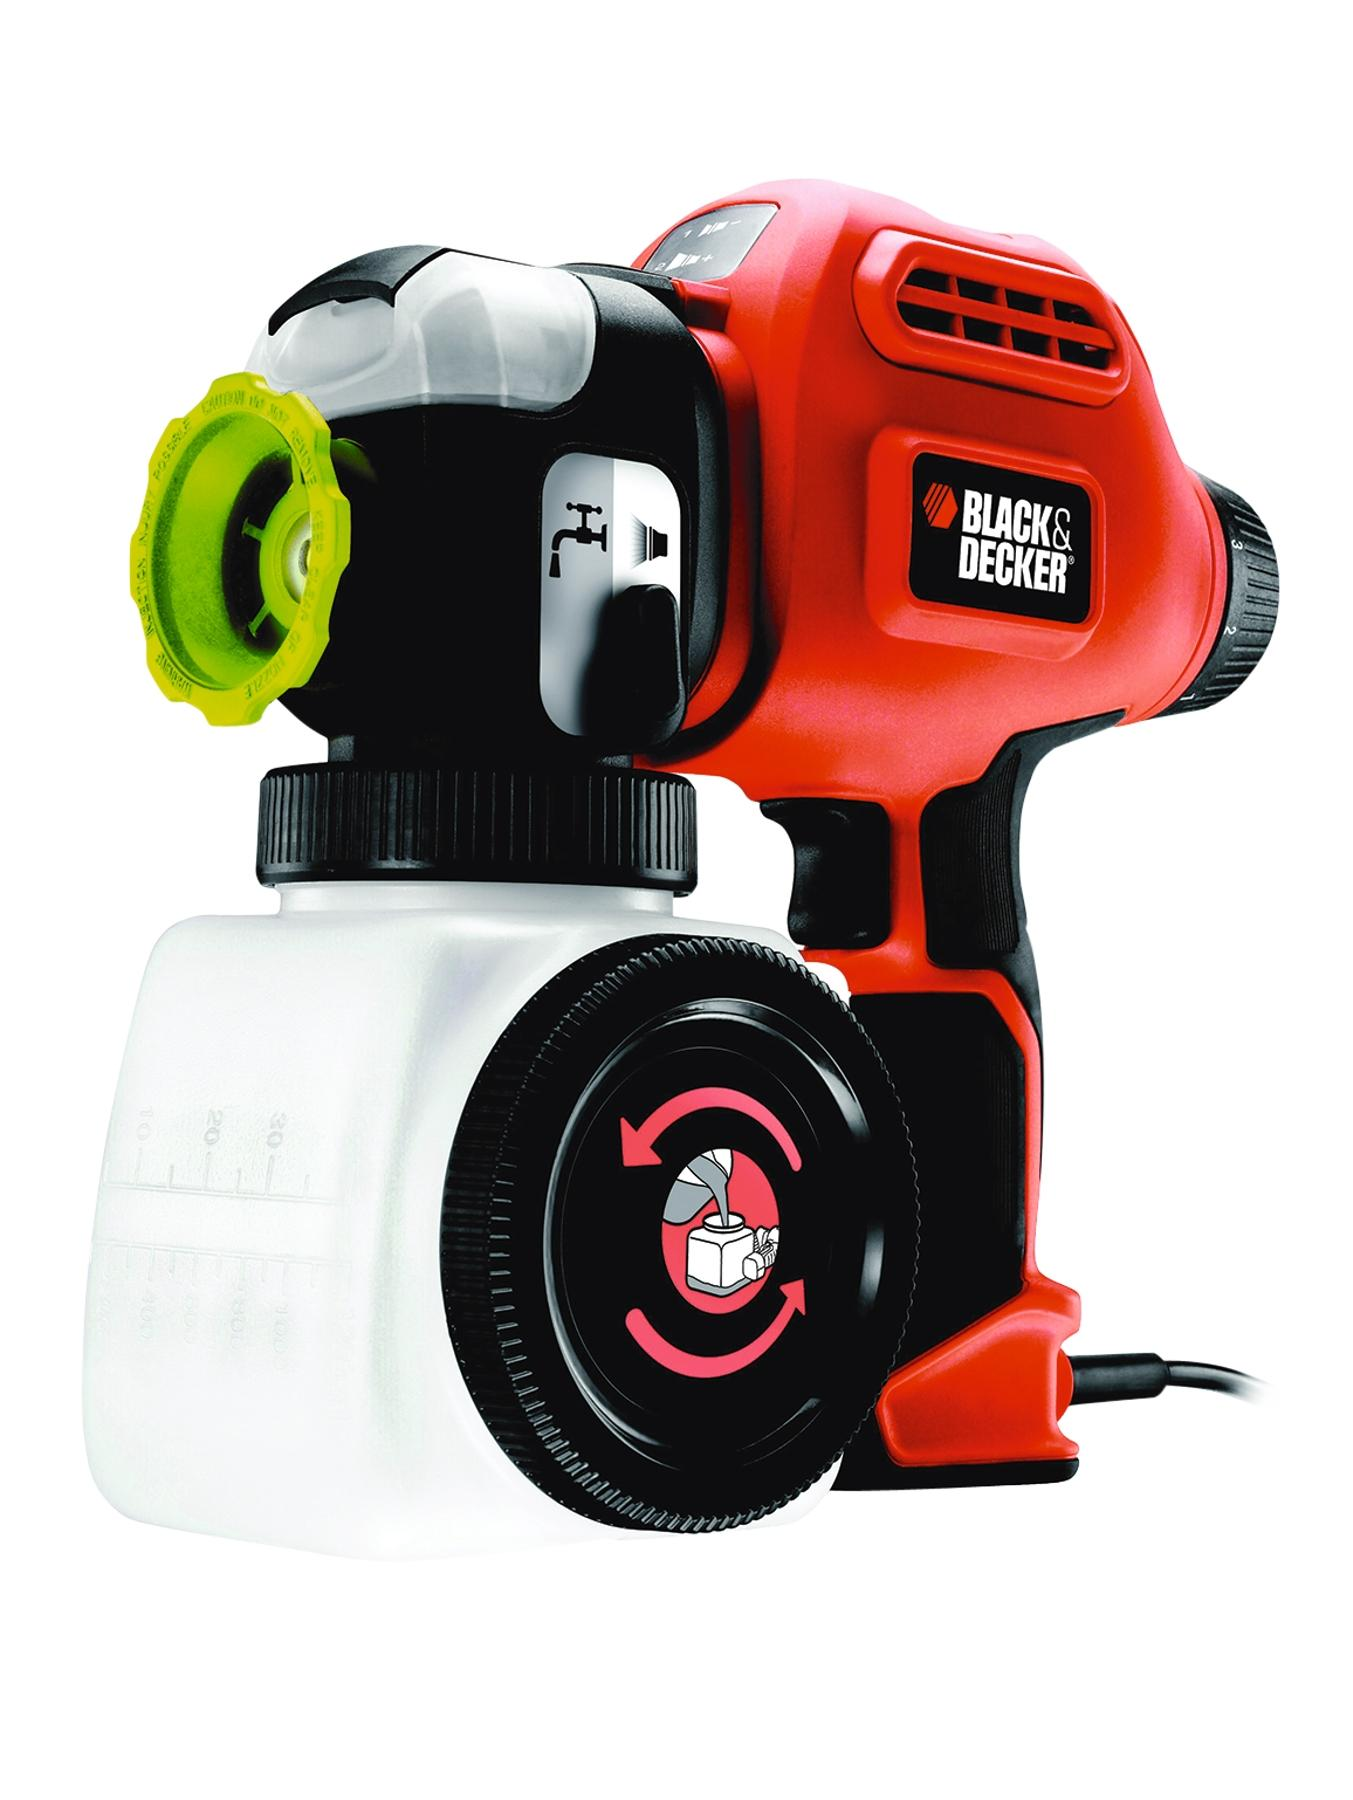 Black & Decker 2-speed Heavy Duty Paint Sprayer with Quick Clean